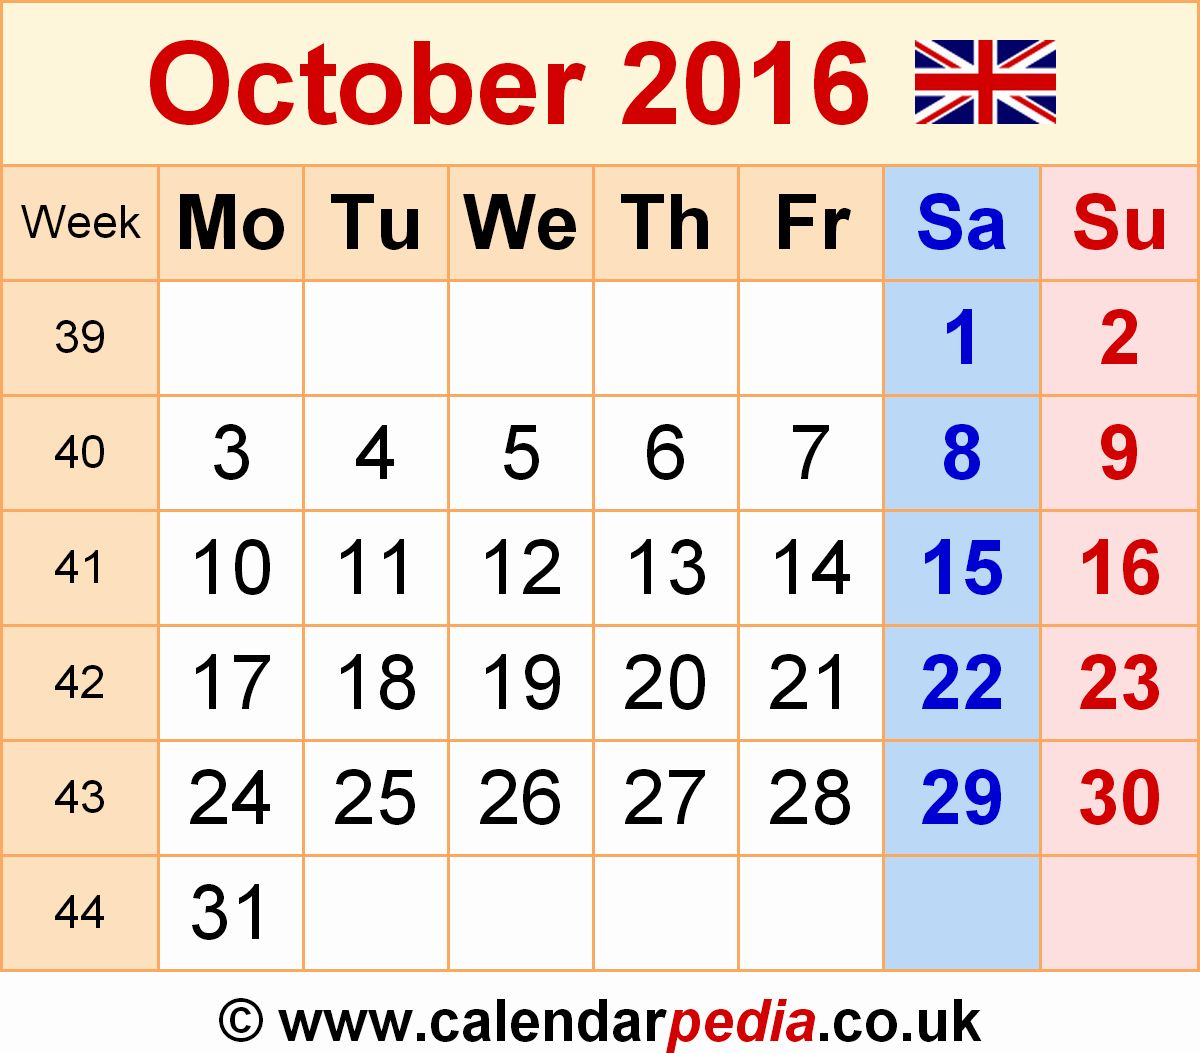 25 October Calendar Template 2016 in 2020 October